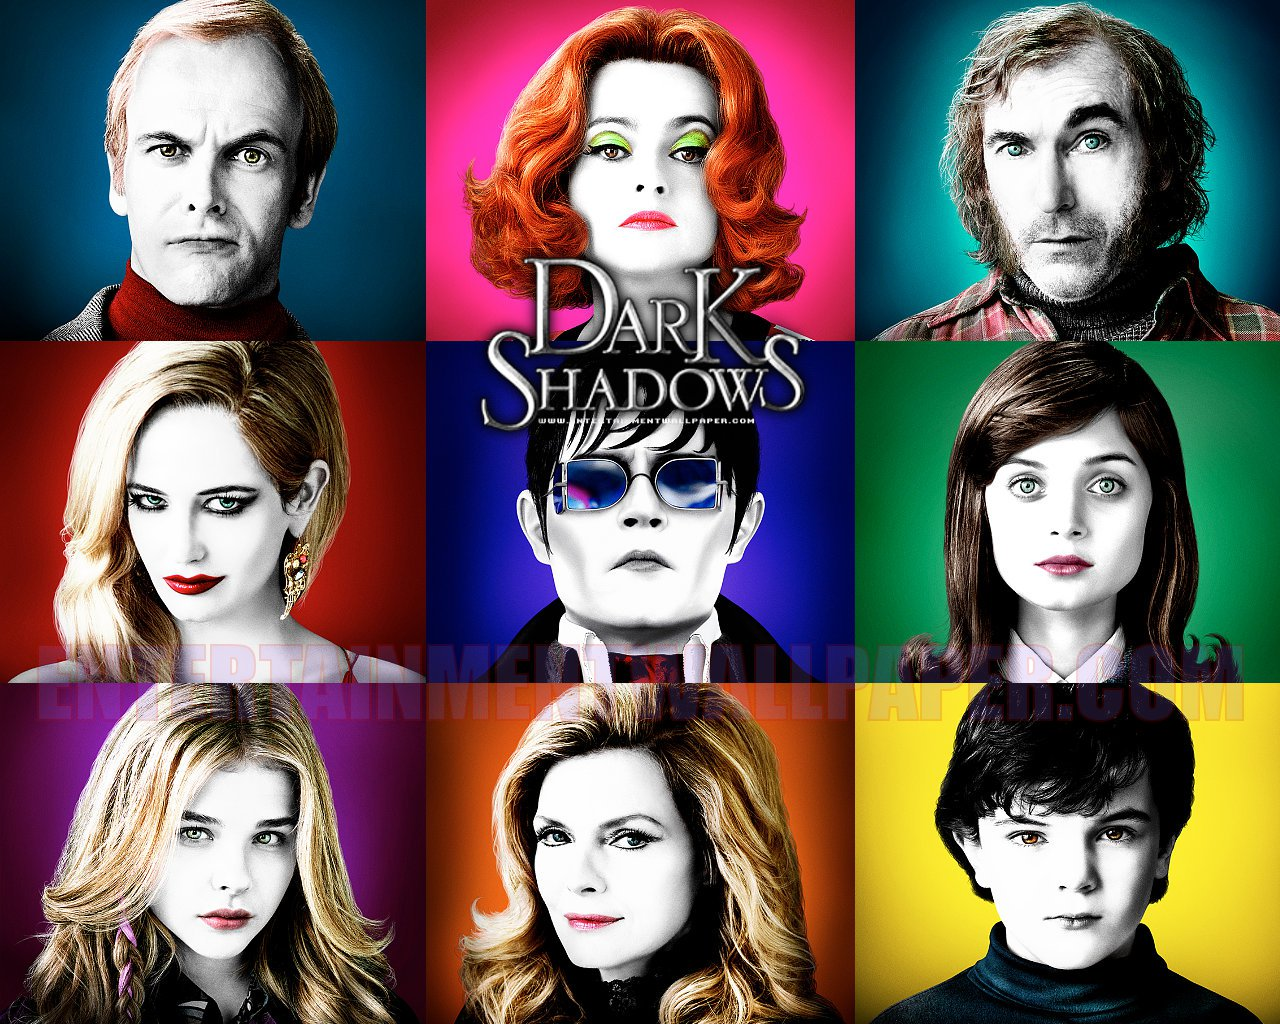 dark shadows movie download mp4